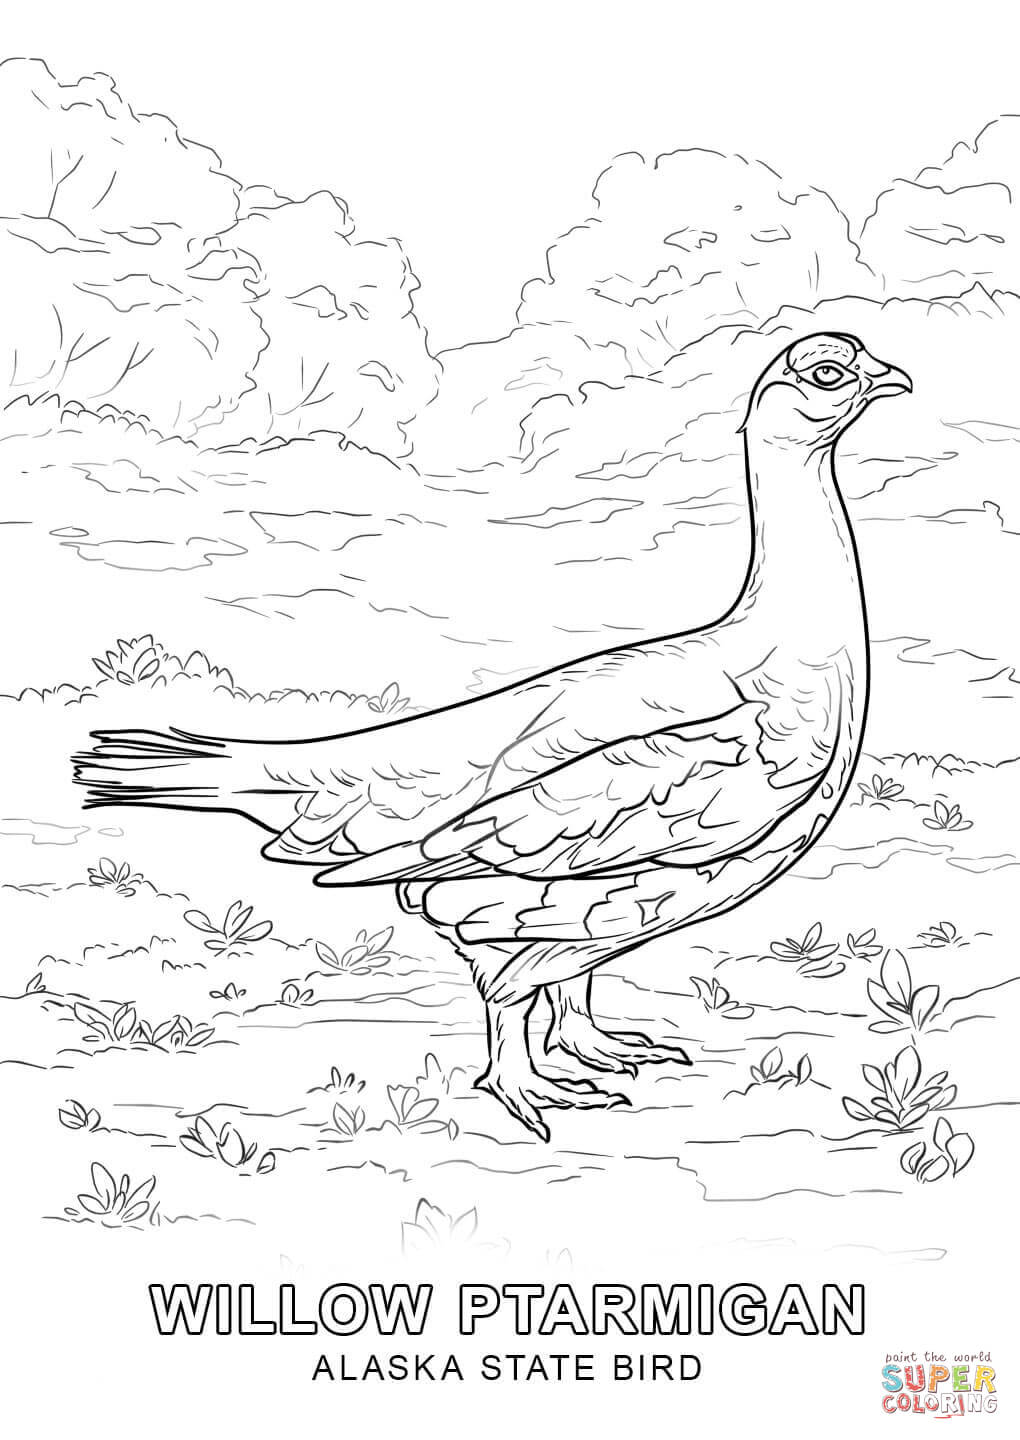 Alabama state bird coloring page coloring home, fun coloring pages